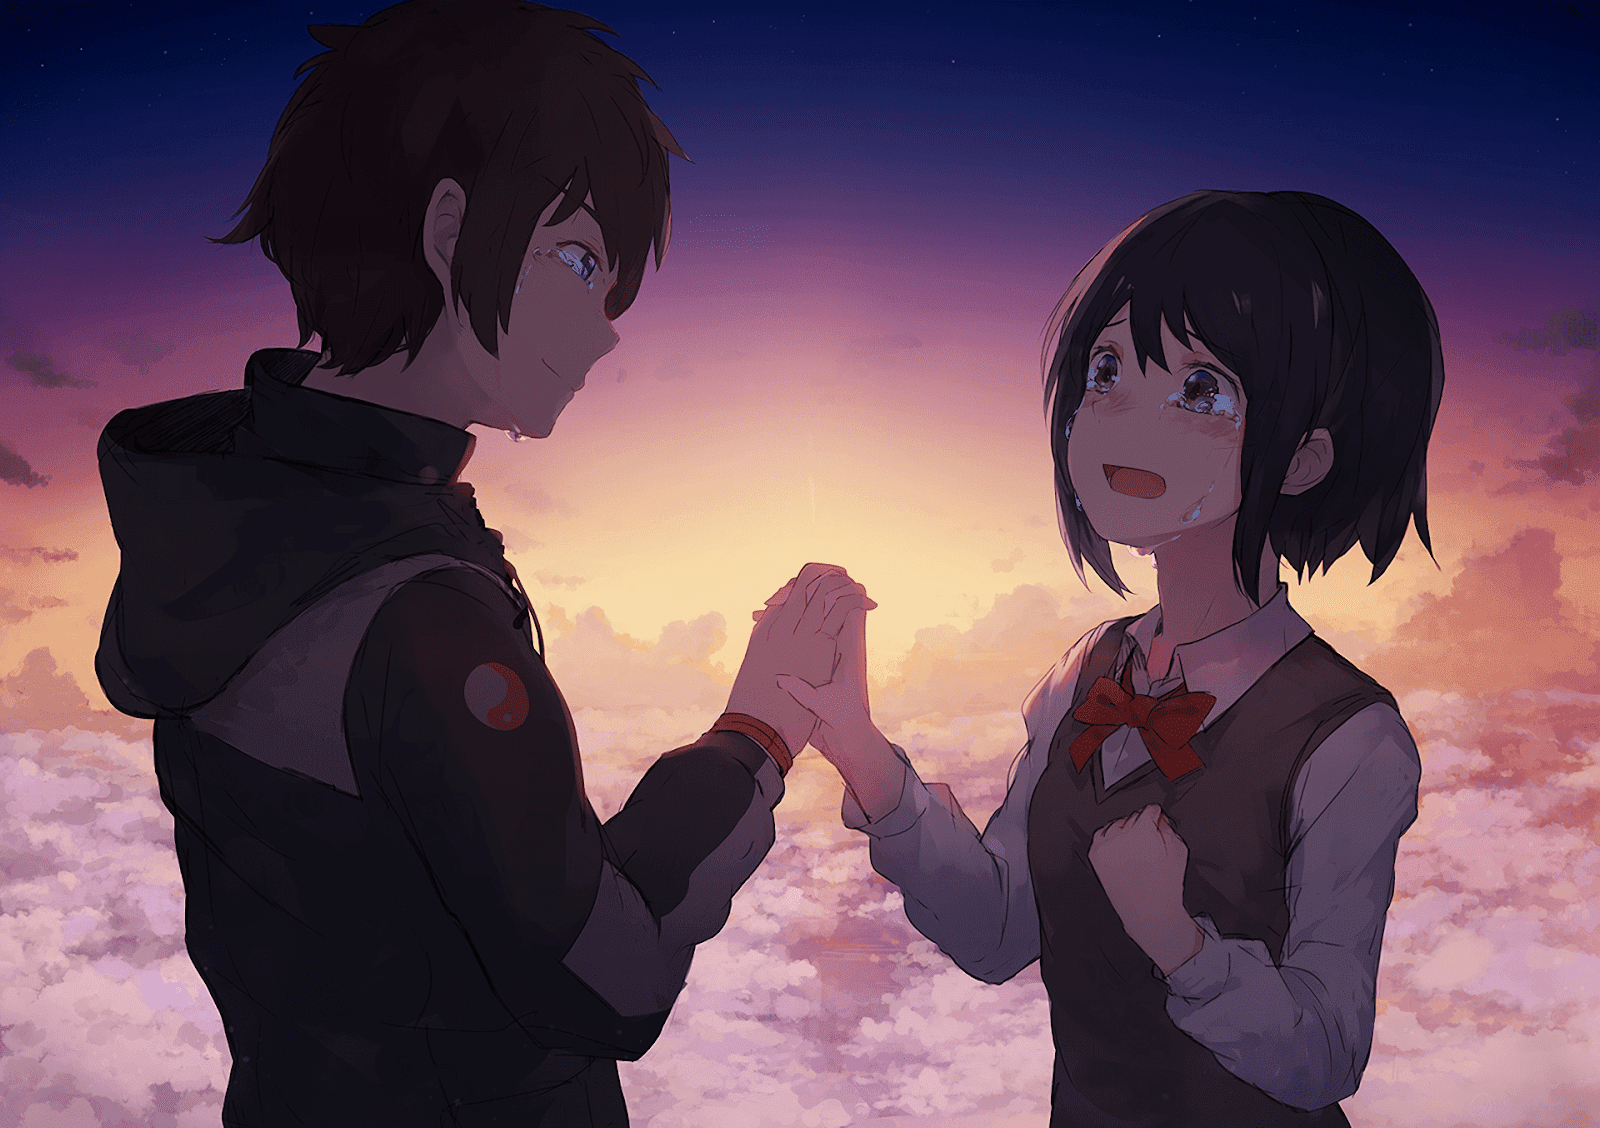 AowVN%2B%252858%2529 - [ Hình Nền ] Anime Your Name. - Kimi no Nawa full HD cực đẹp | Anime Wallpaper